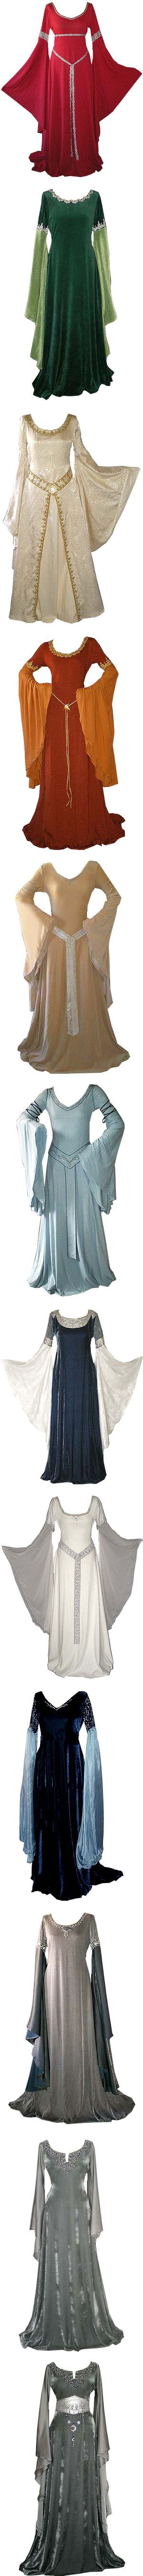 """""""Medieval Gowns I"""" by savagedamsel ❤ liked on Polyvore. Some of these are close to Period and they all have dreamy sleeves"""